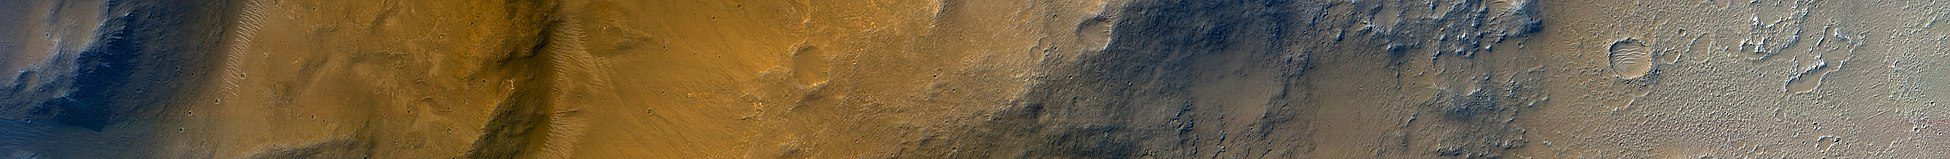 (ESP 048293 2040) Central Peak of Poona Crater.jpg